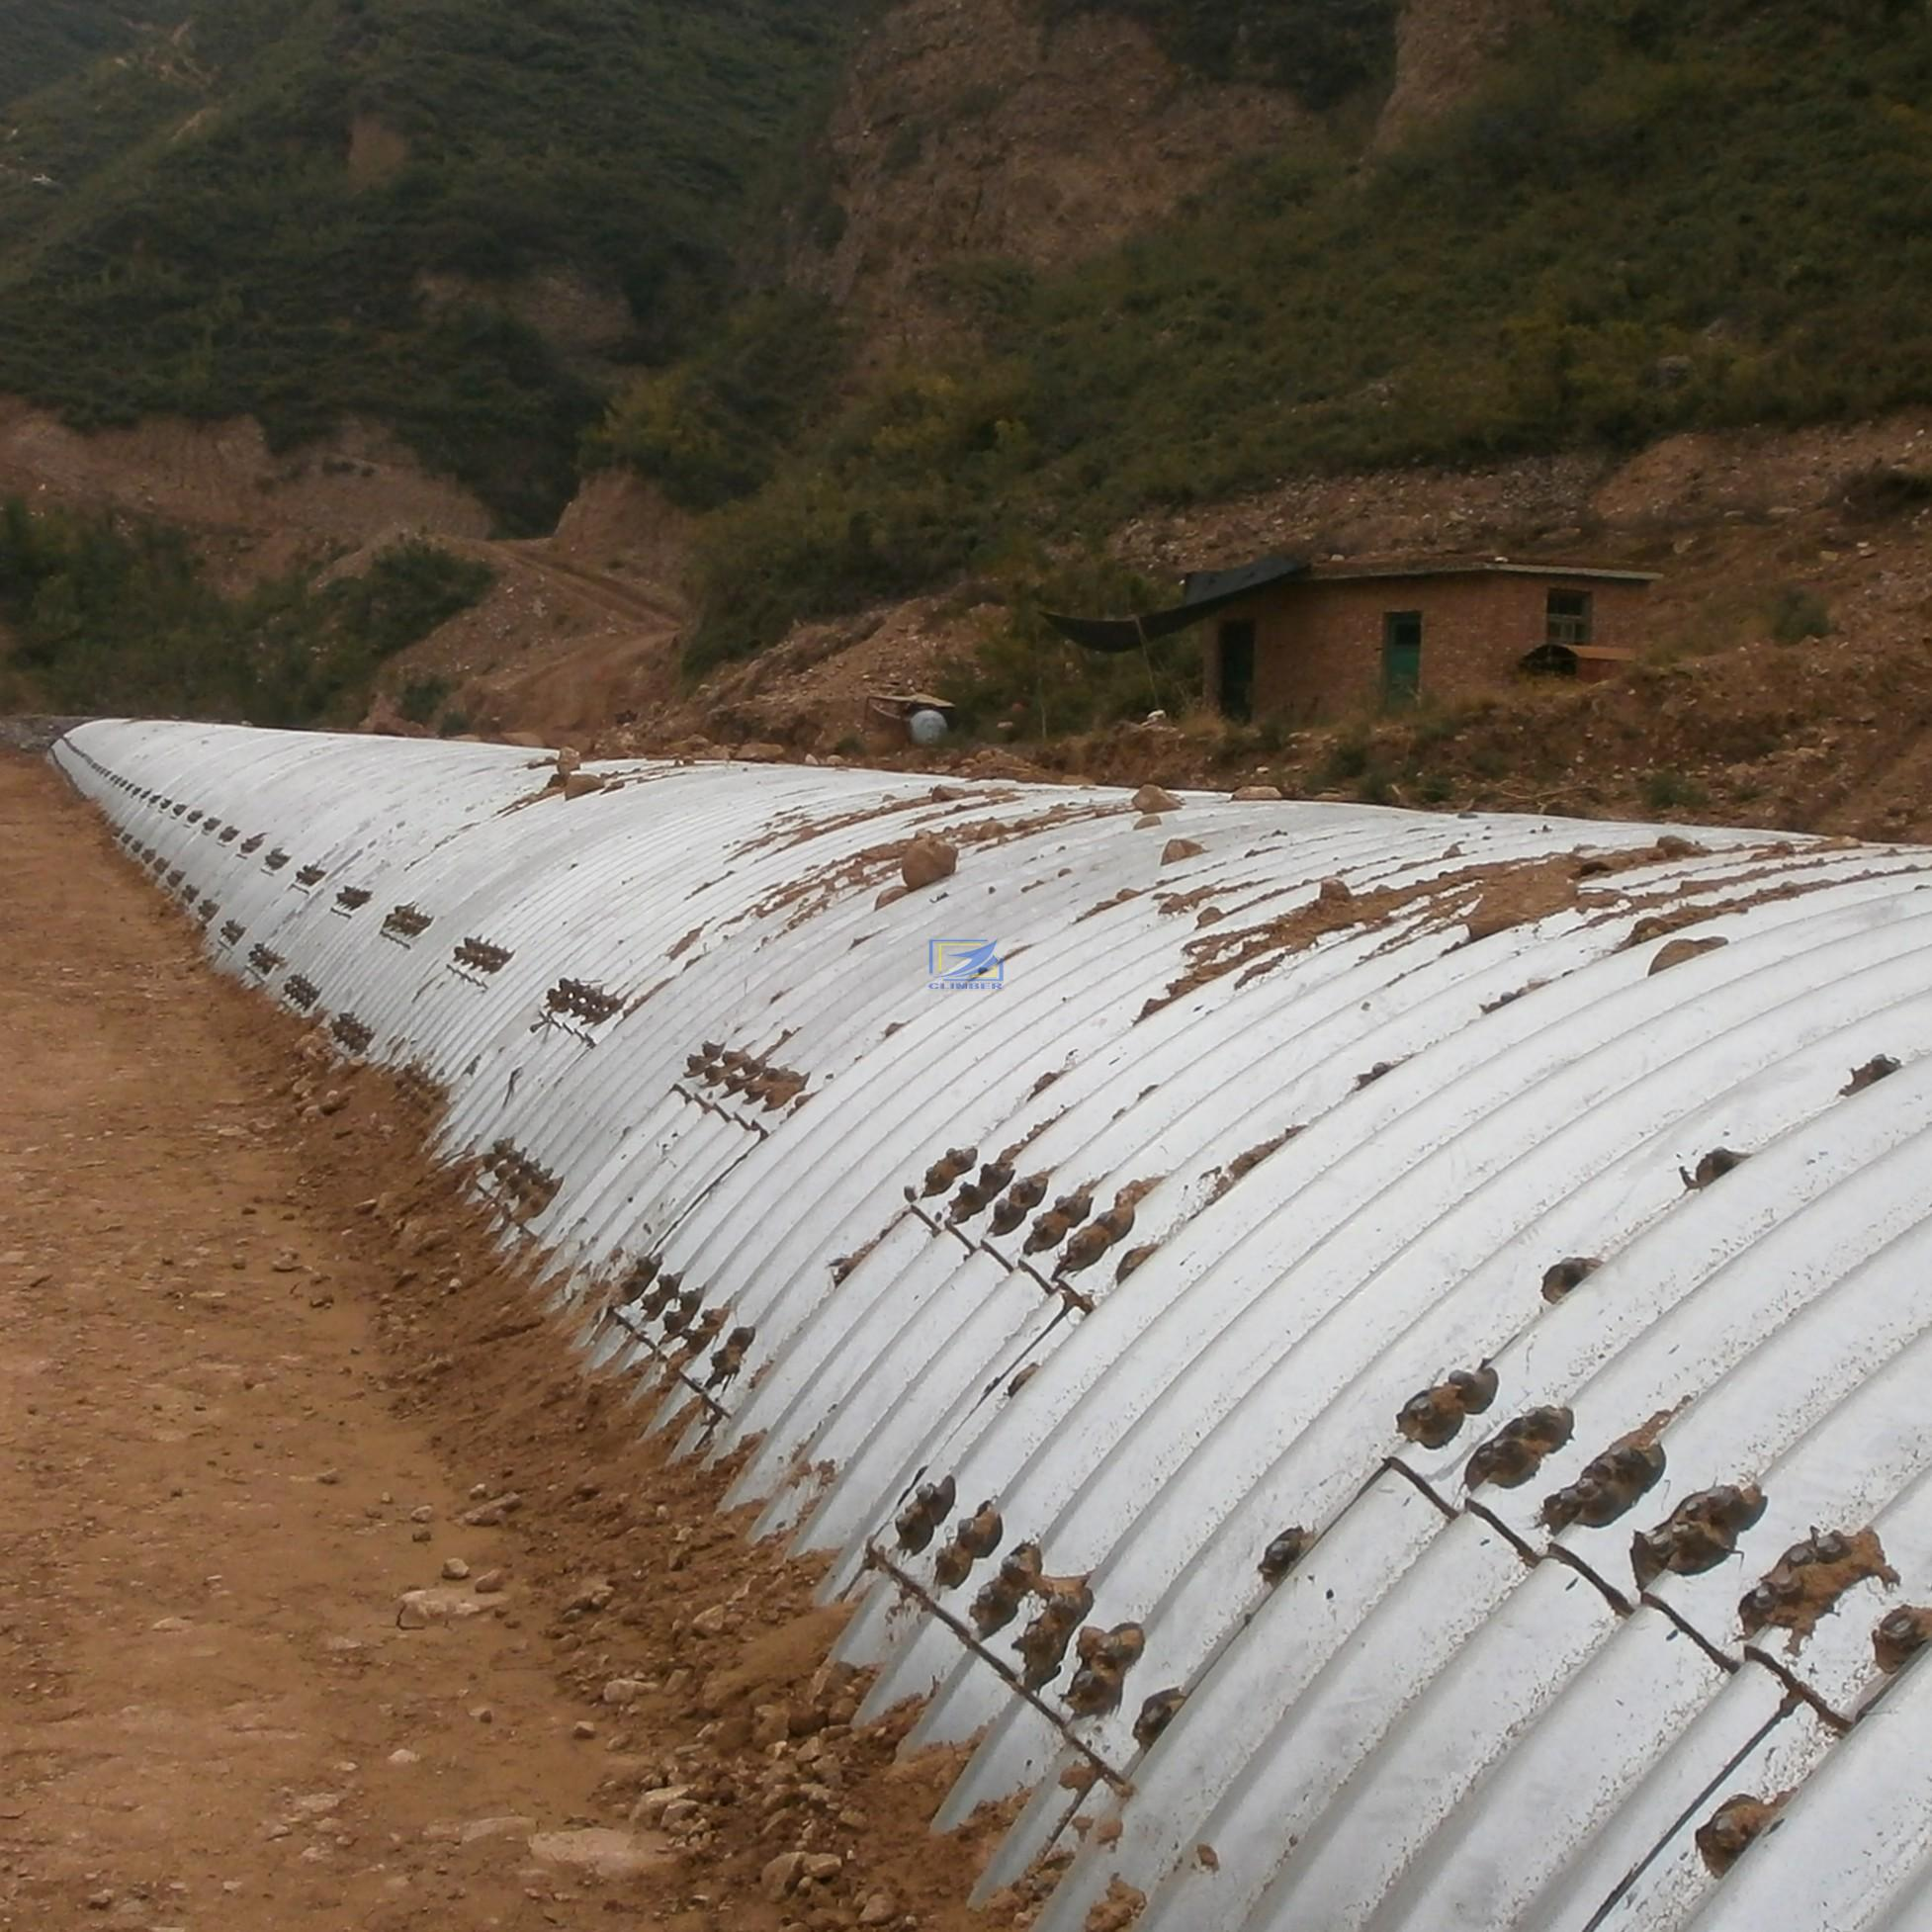 wholesale the corrugated metal pipe and corrugated culvert in Mongolia